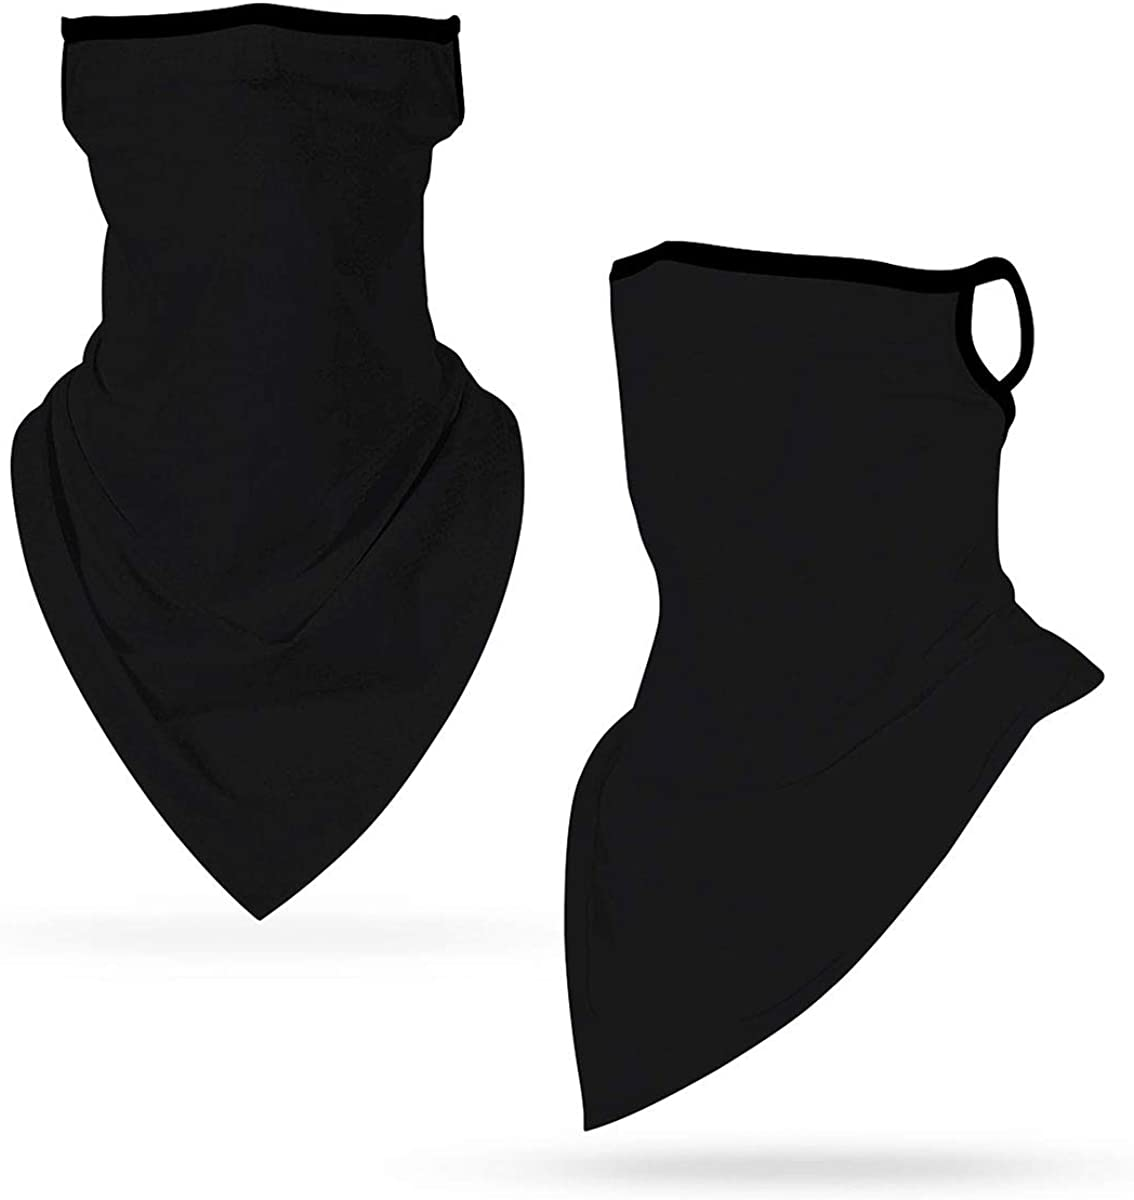 Bandana Neck Gaiter Balaclava Headwear, Ice Silk Cooling Sports Tube Mask Ear Loops Face Cover Scarf for Outdoor